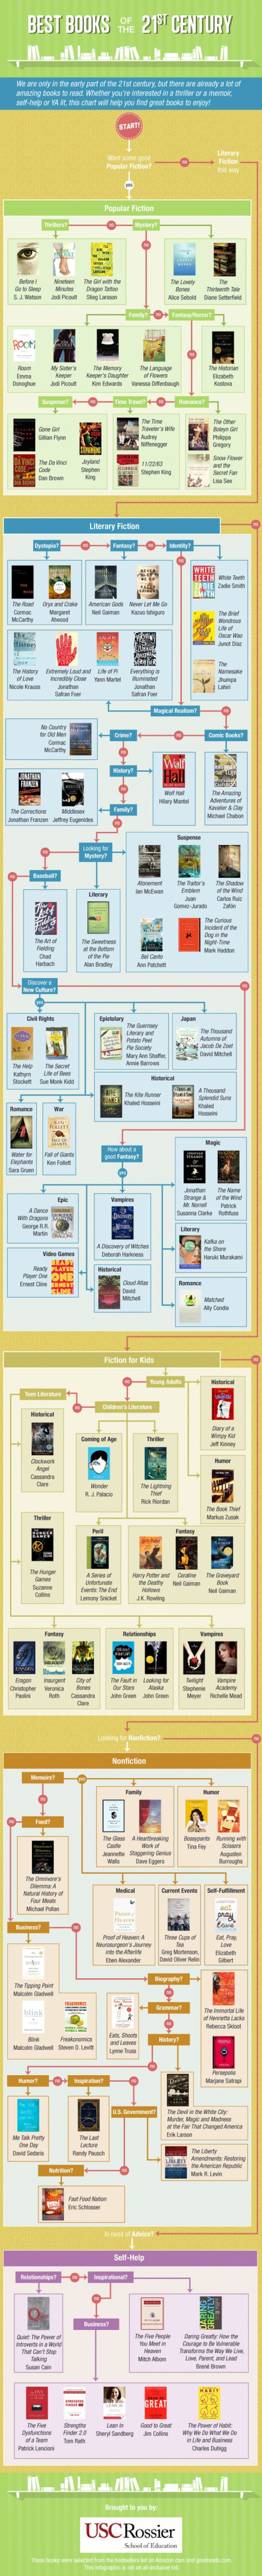 Best-Books-of-the-21st-Century-Infographic